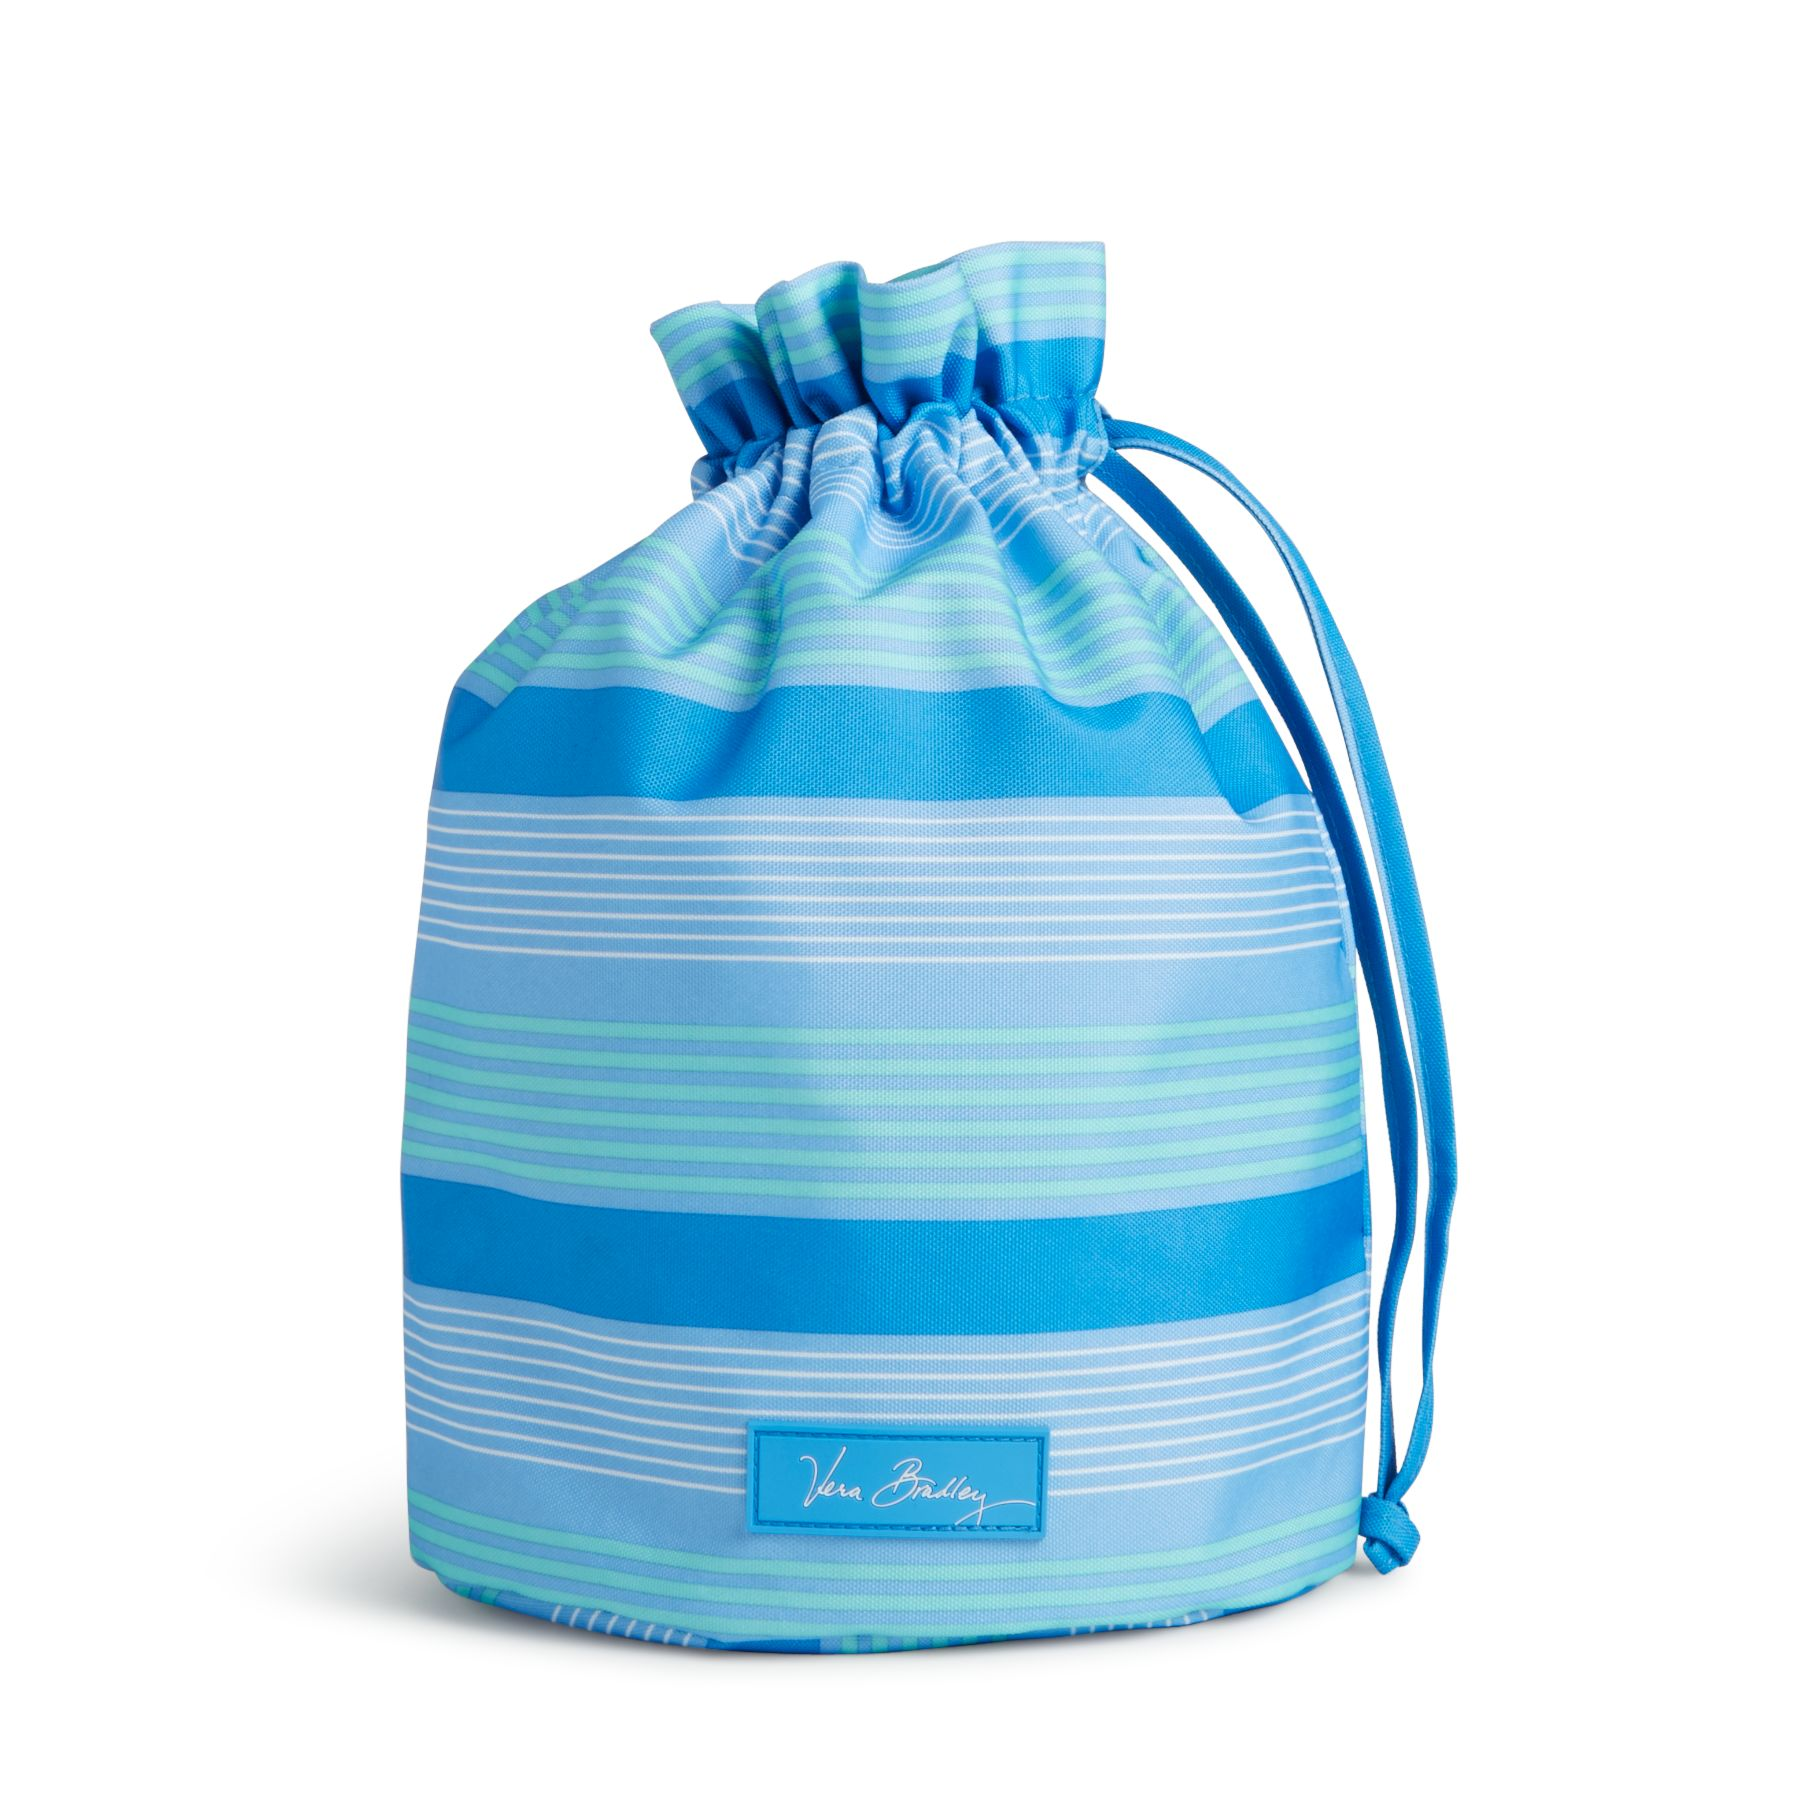 Vera Bradley Lighten Up Ditty Bag in Blue Tonal Stripe